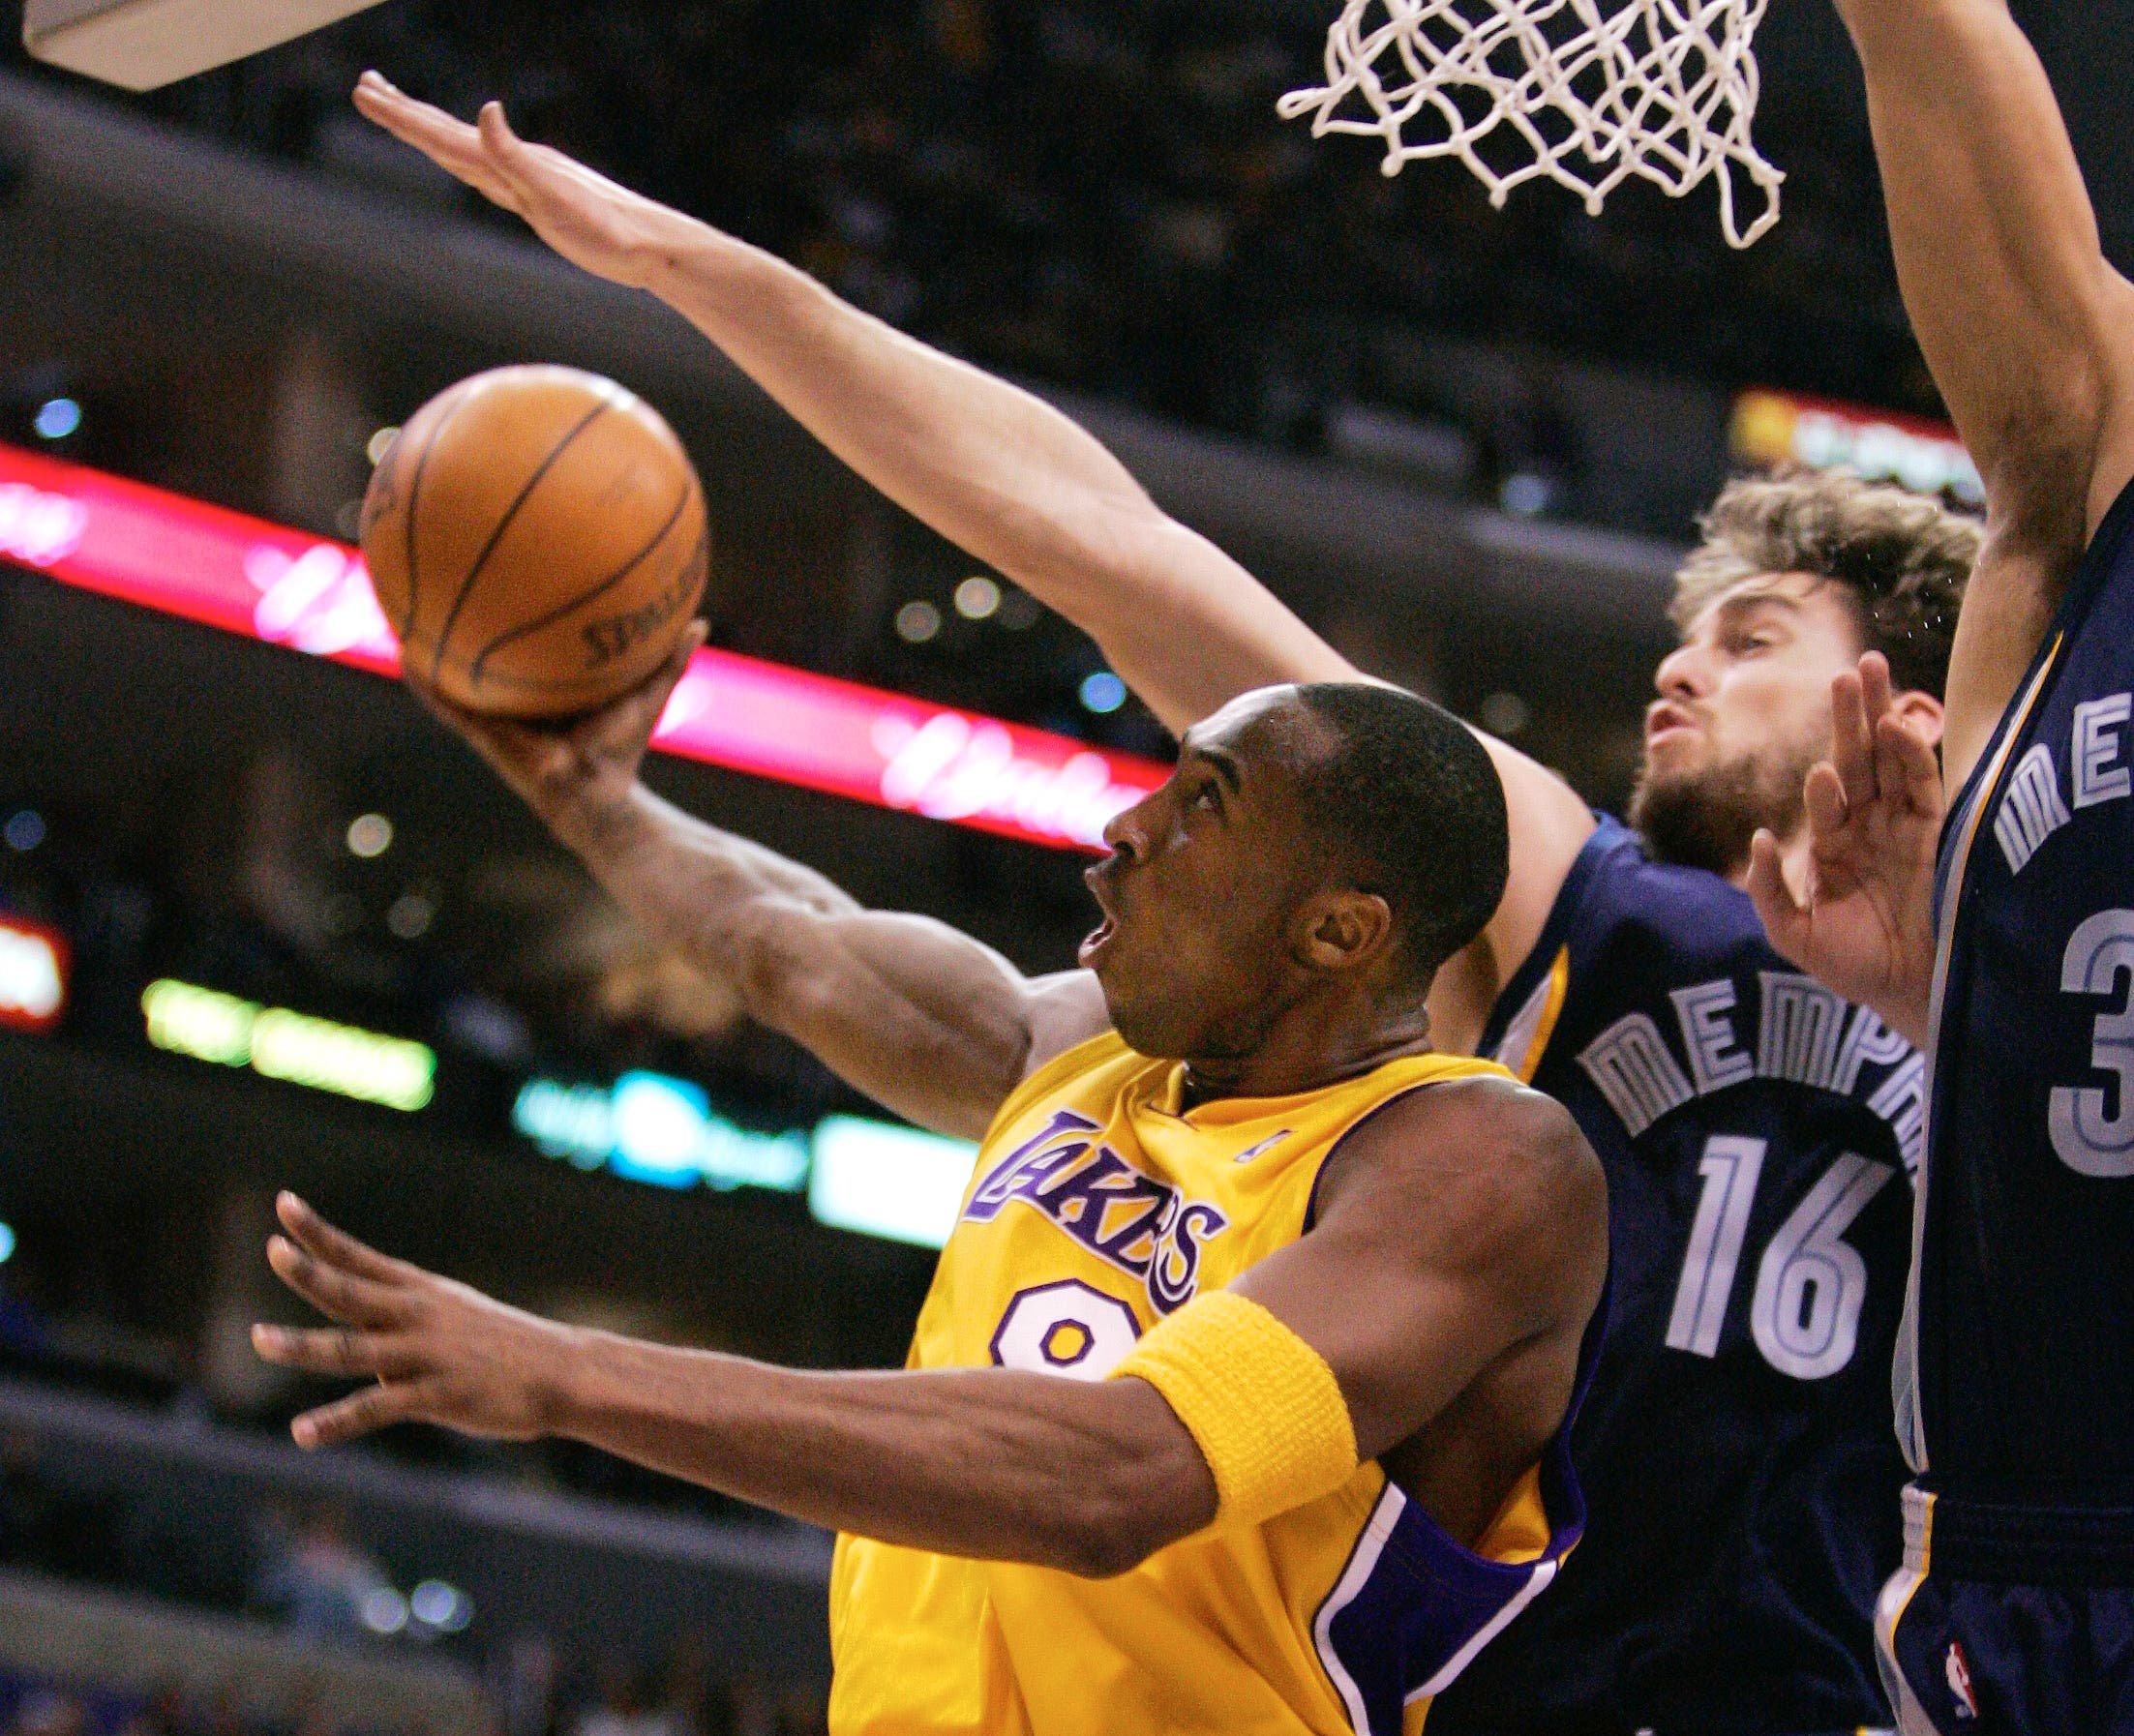 Kobe Bryant puts up a shot around Memphis Grizzlies' Pau Gasol, of Spain, during the first half of an NBA basketball game Wednesday, Dec. 28, 2005. (AP)